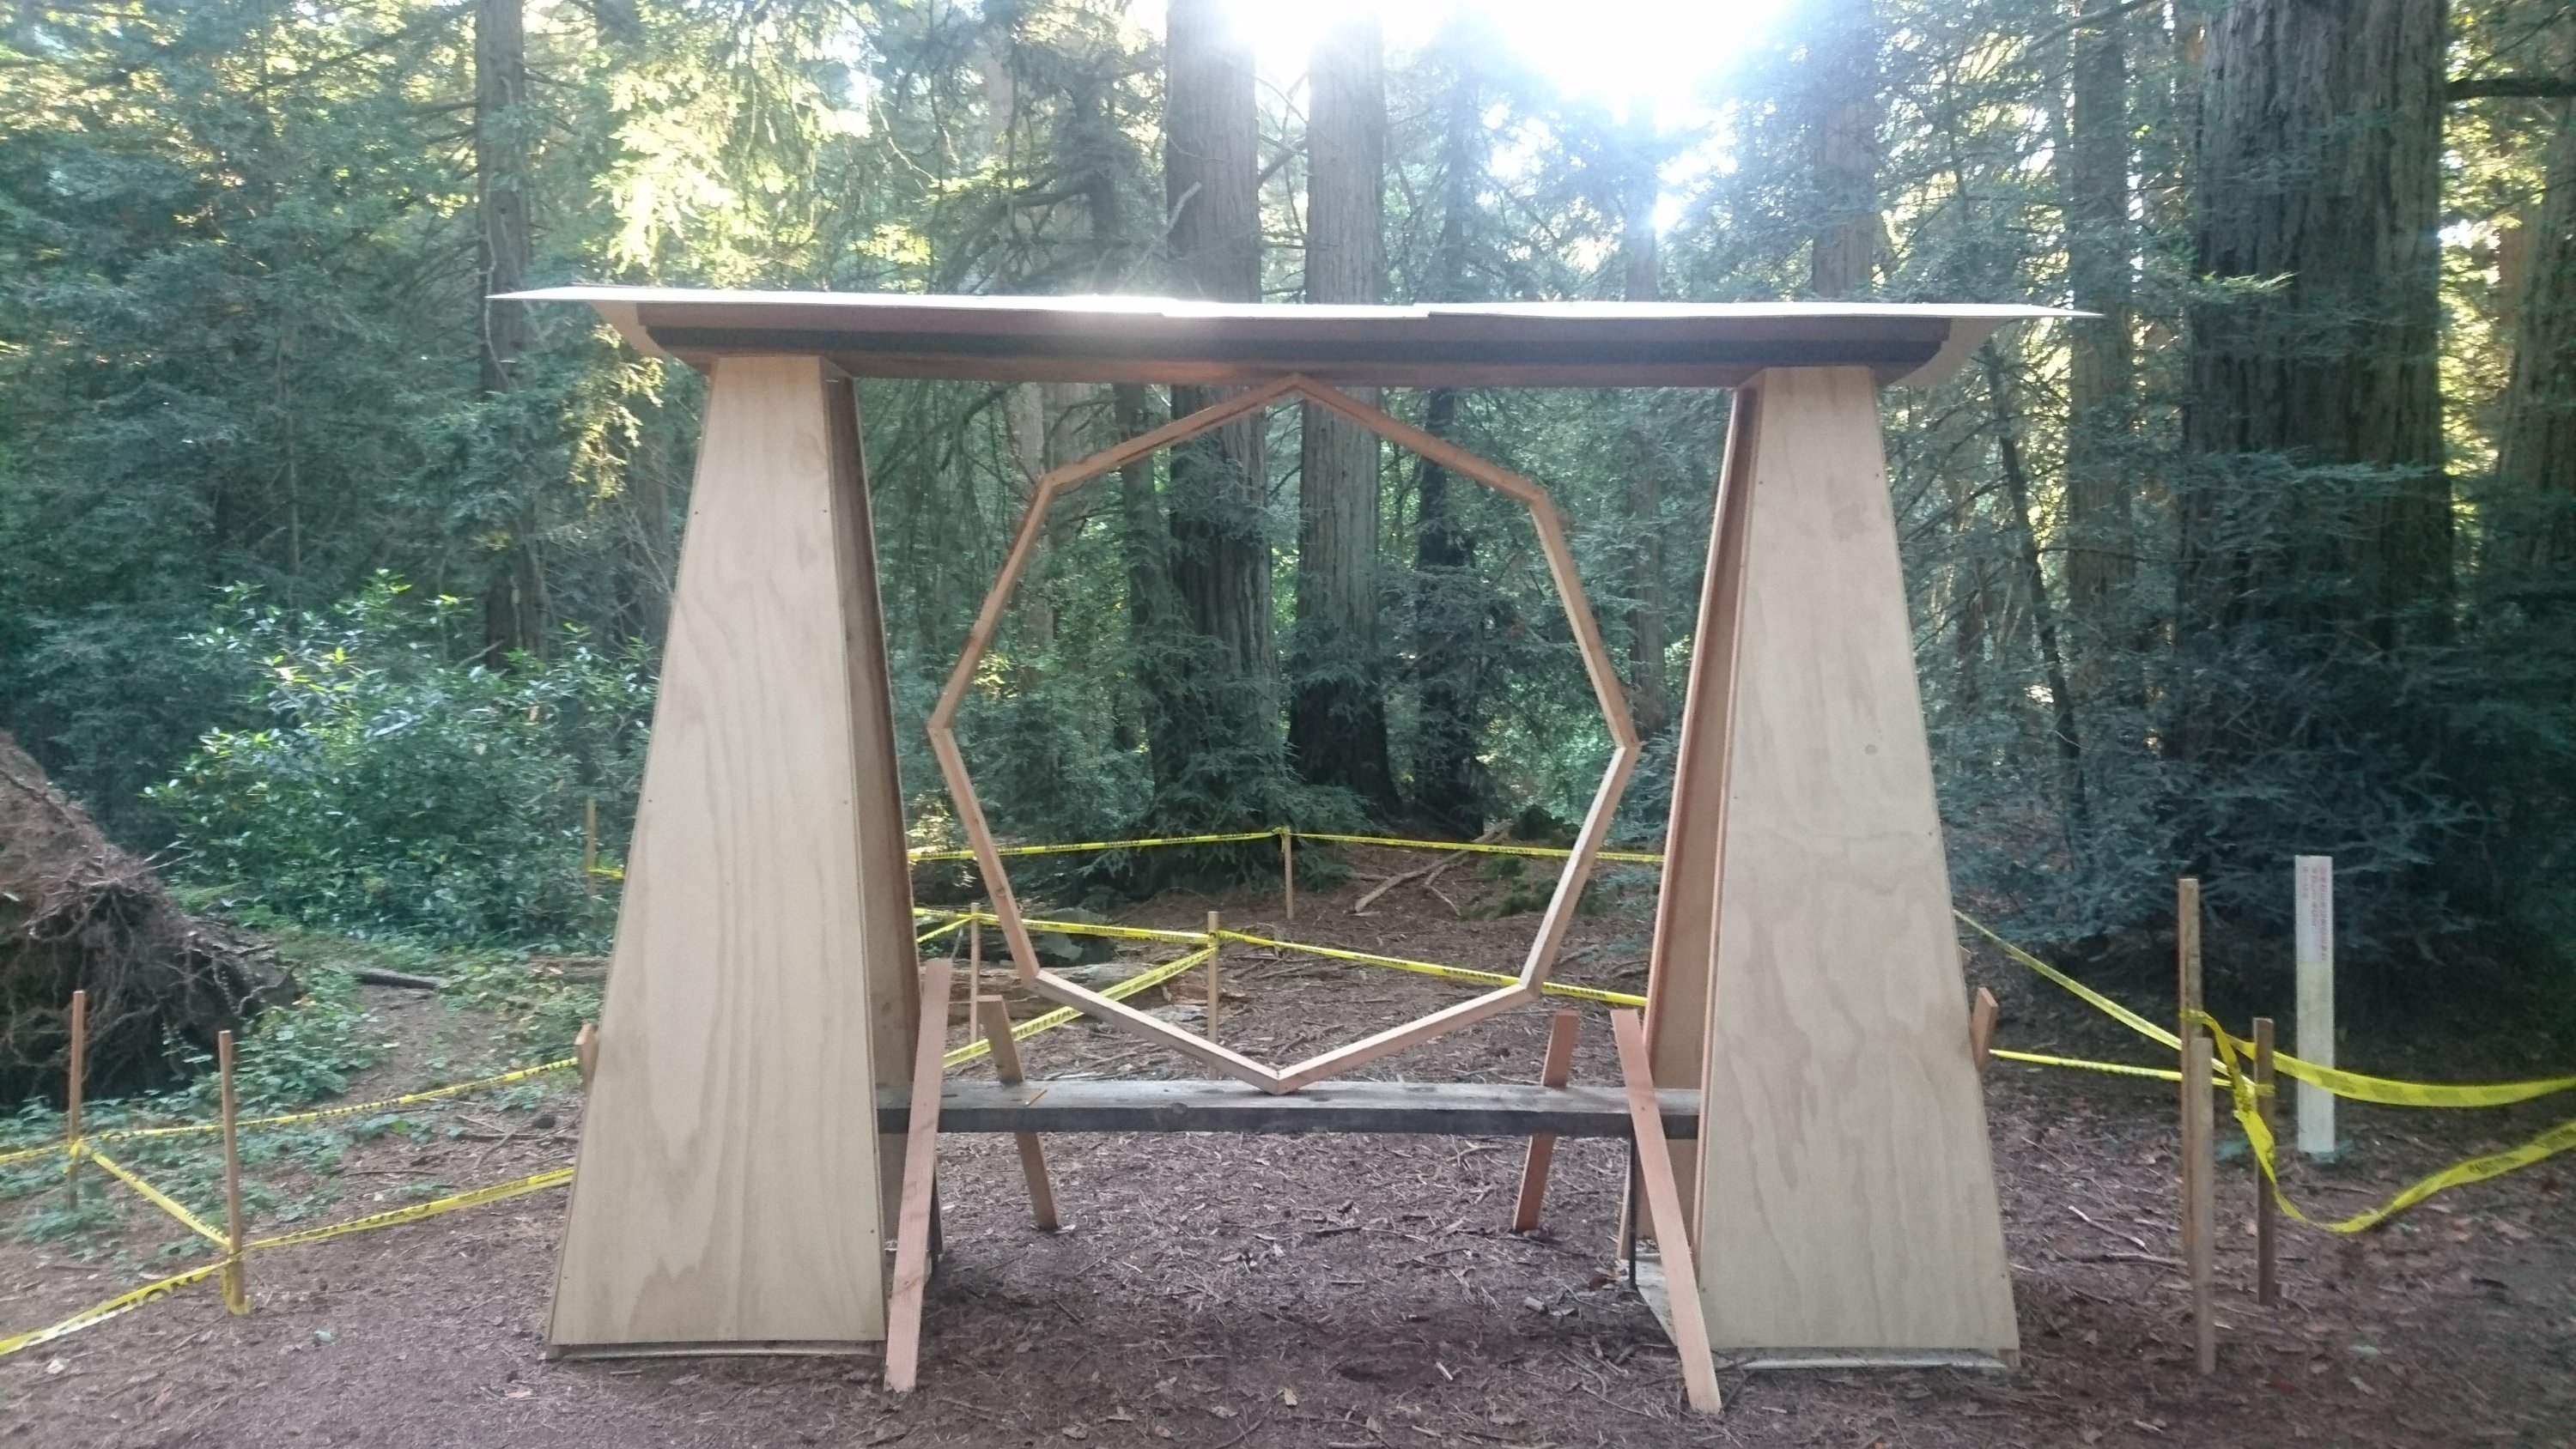 Unkown wooden structure in Redwoods